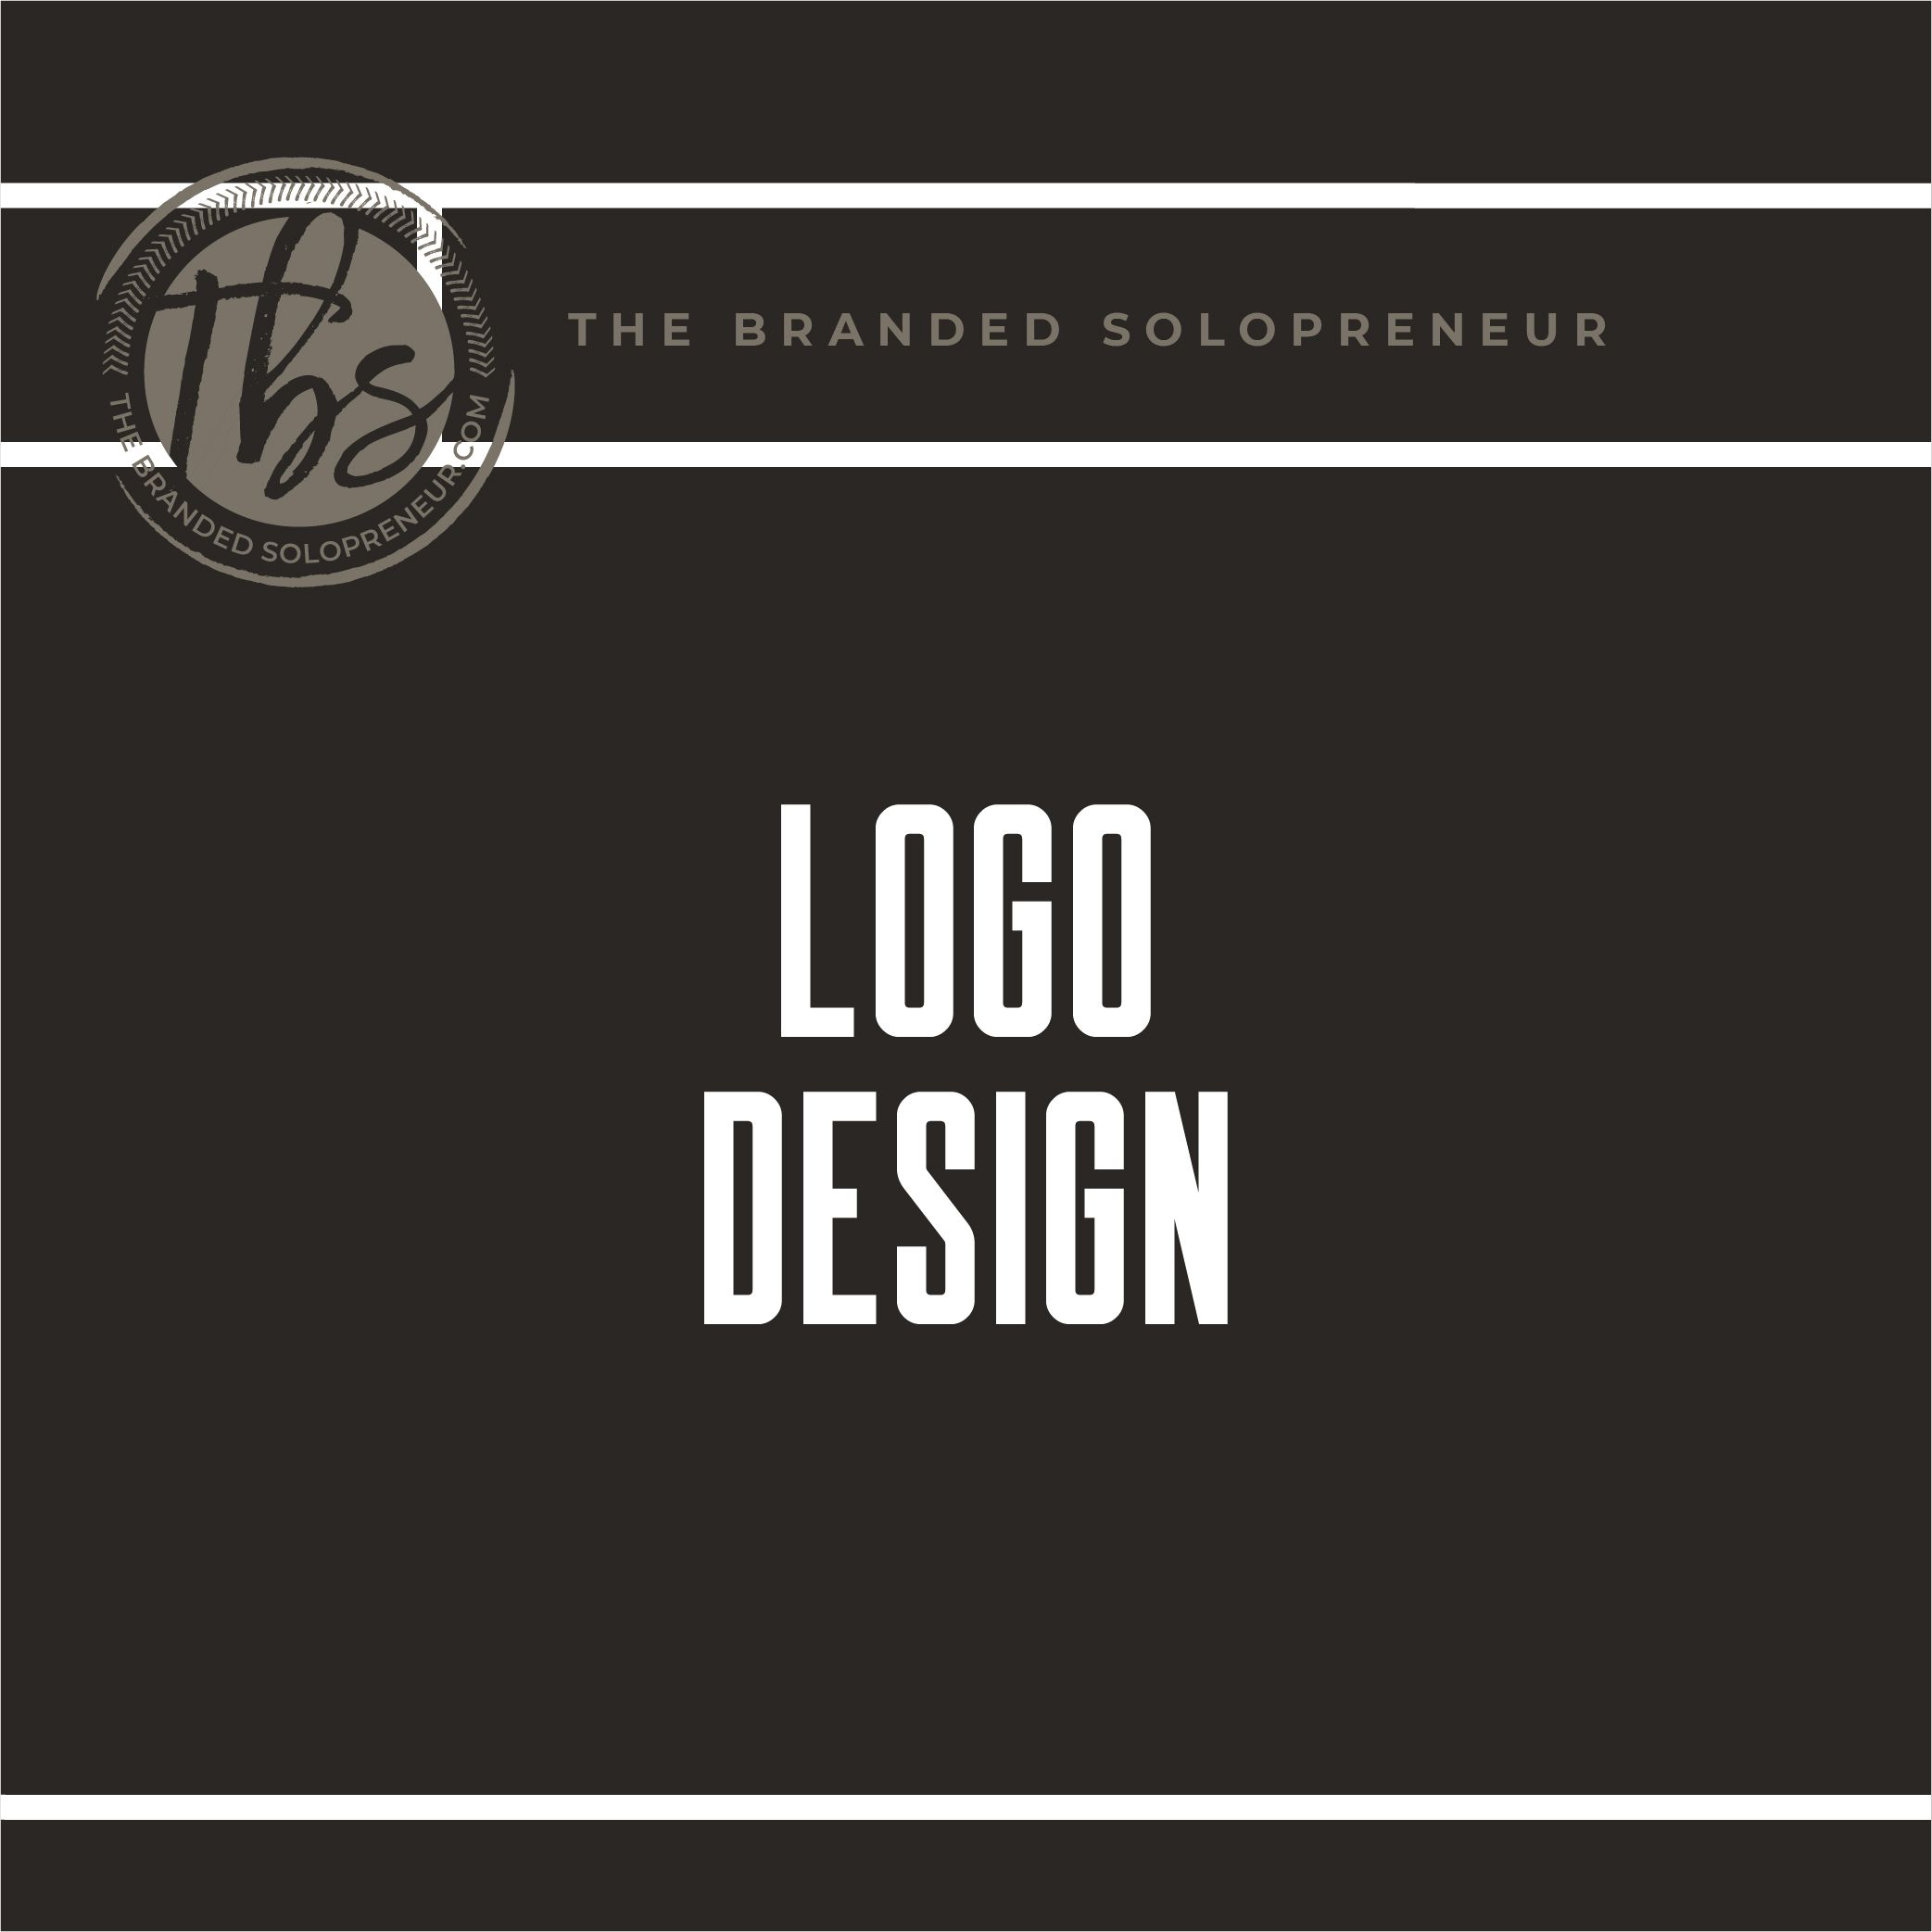 All the logo design inspiration you need to start pulling